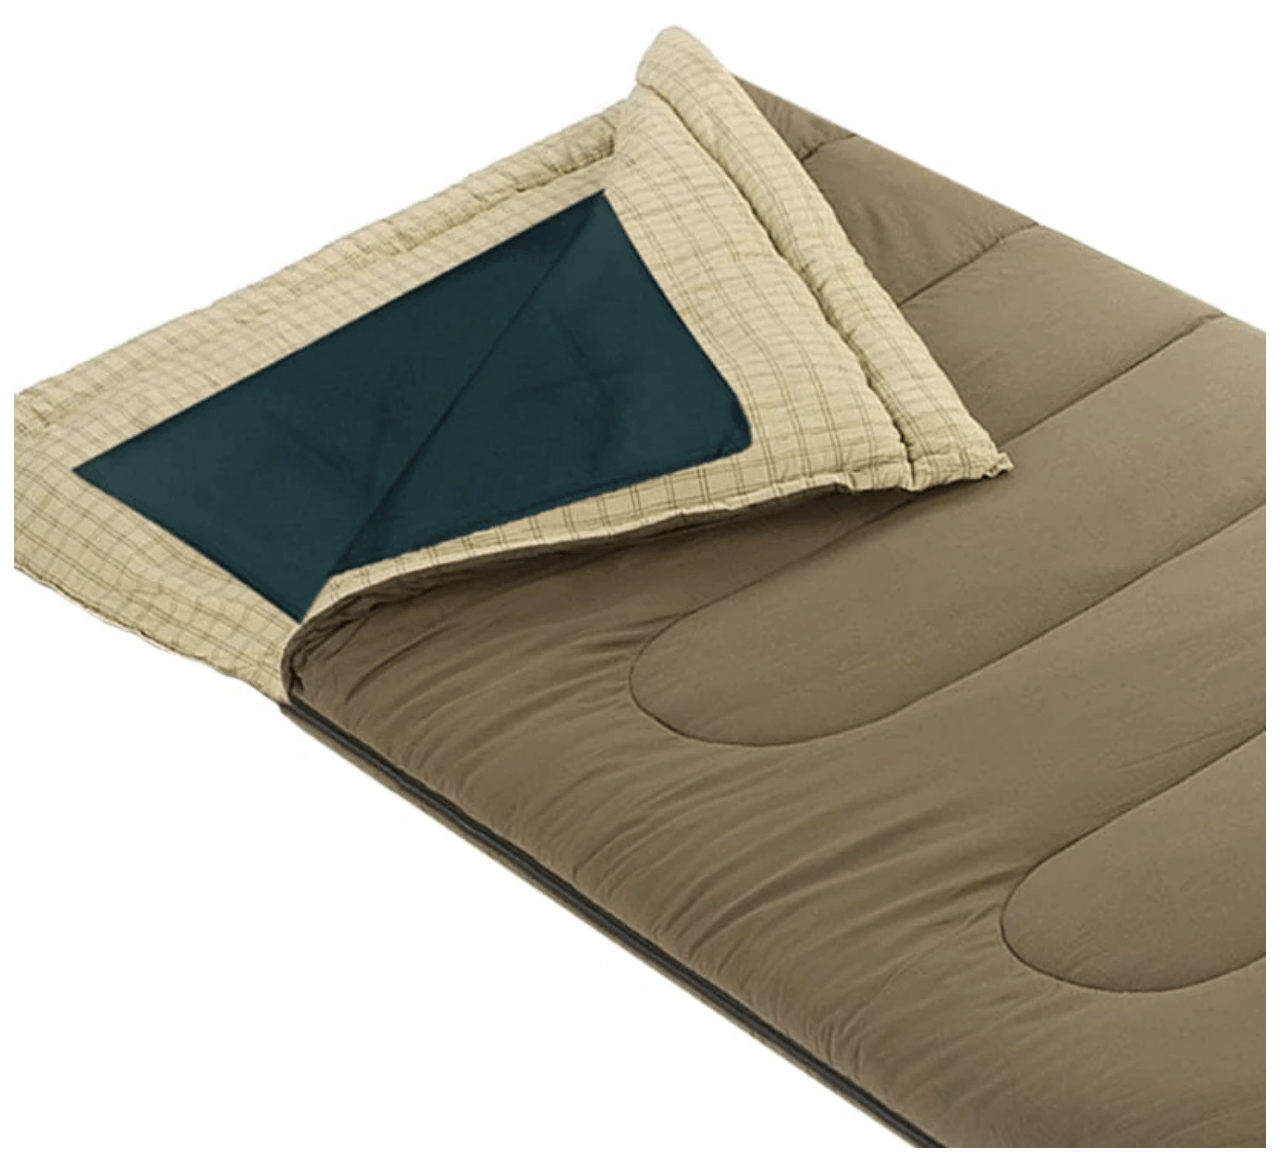 Bedwetting Sleeping Bag Liner